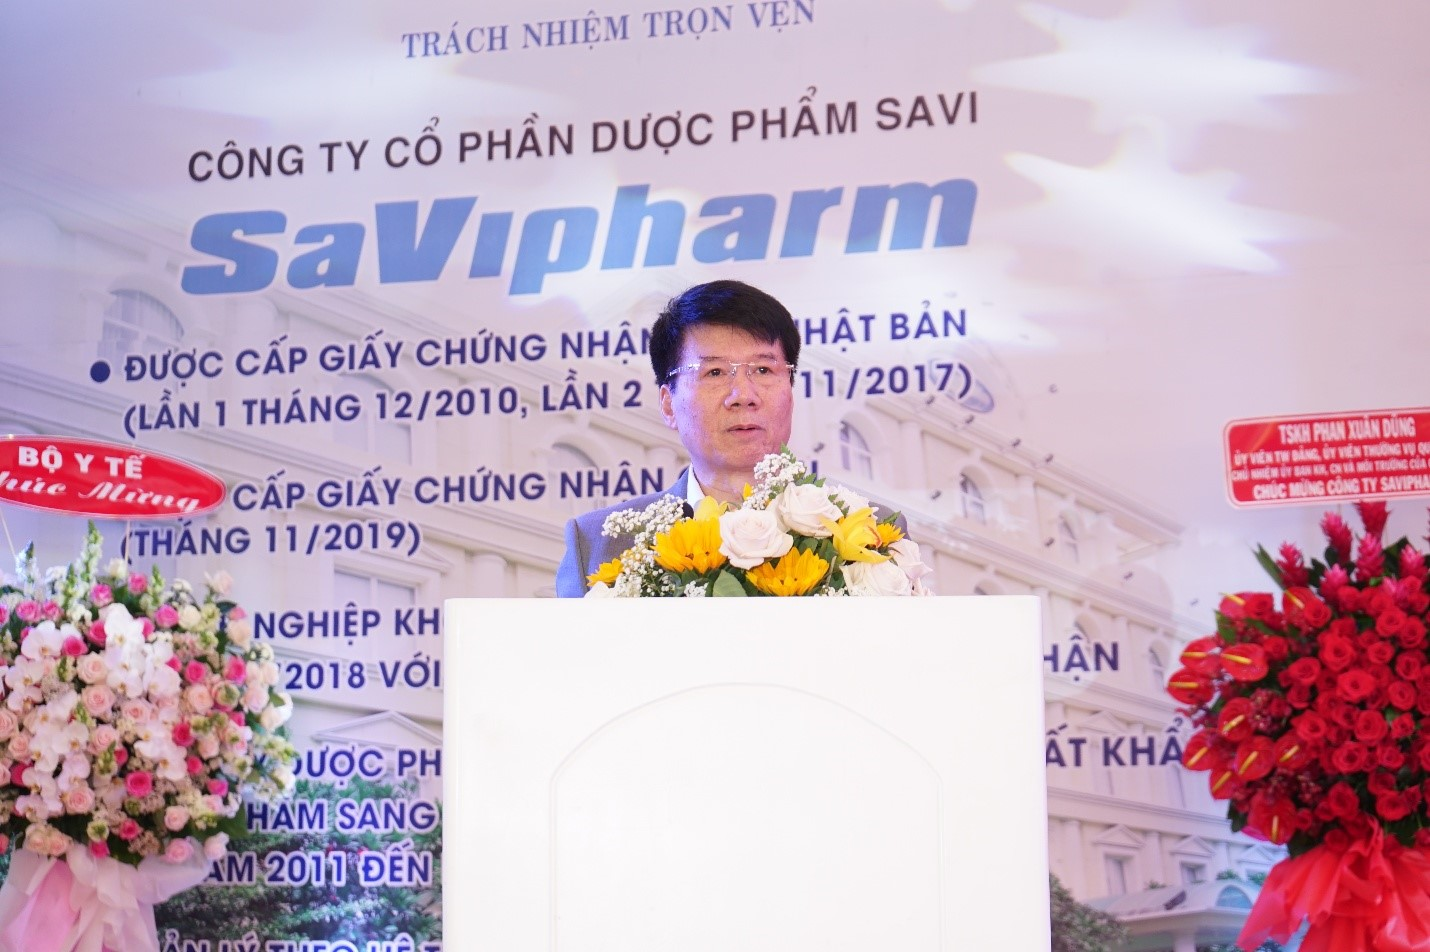 Dr. Truong Quoc Cuong, Deputy Minister of Health, speaks speaks at a ceremony granting SaVipharm an EU Good Manufacturing Practice certificate in Ho Chi Minh City on January 7, 2020. Photo: SaVipharm